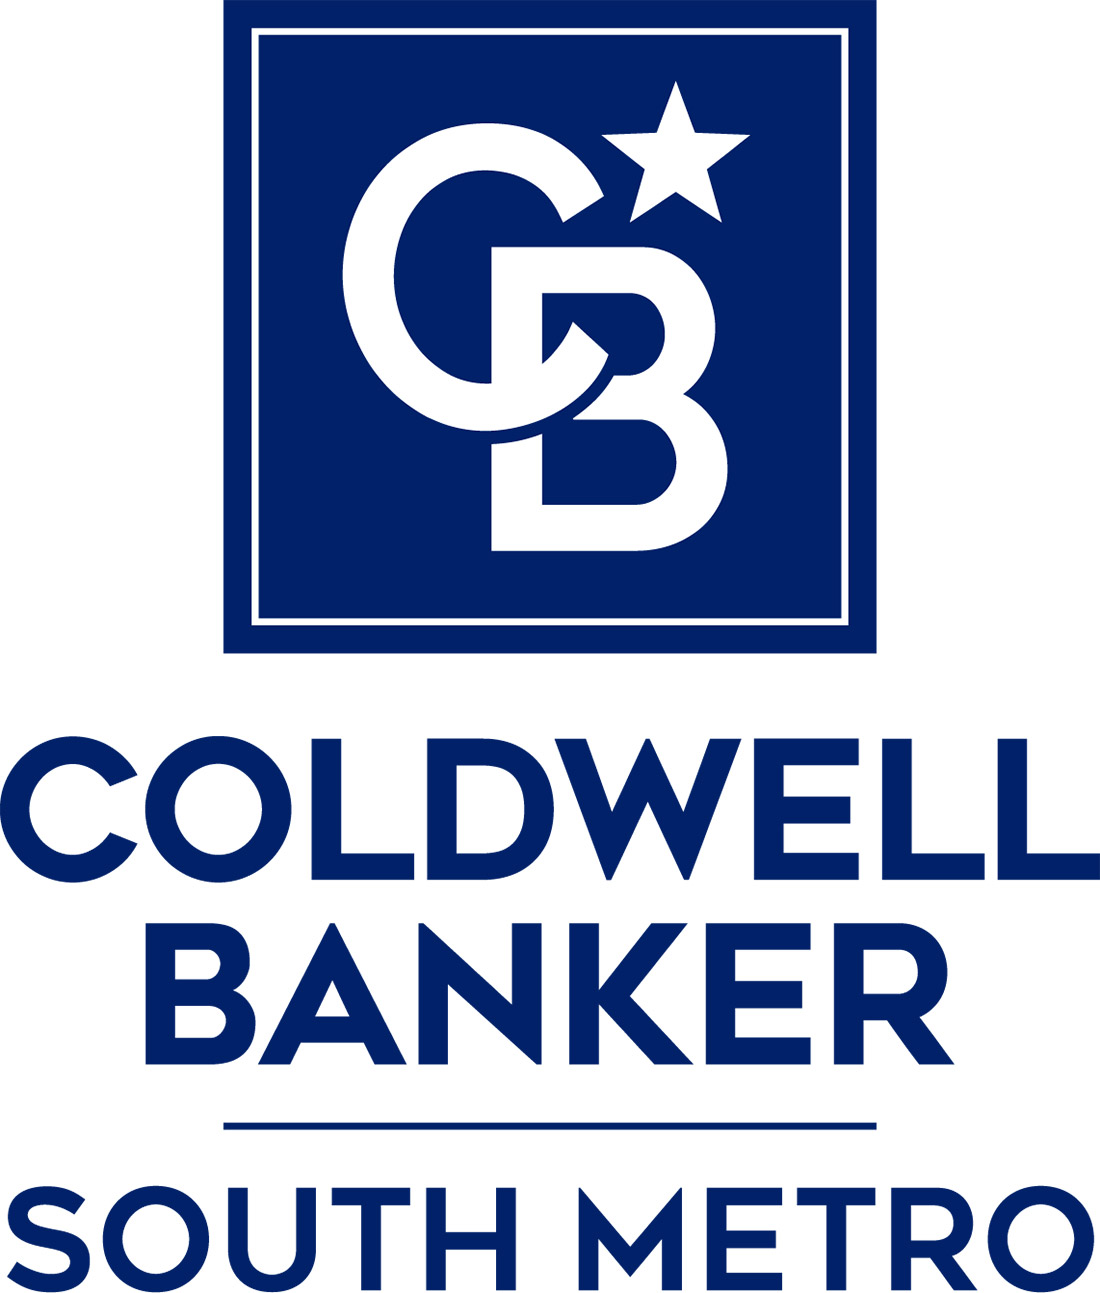 Edward Kuhlman - Coldwell Banker South Metro Logo